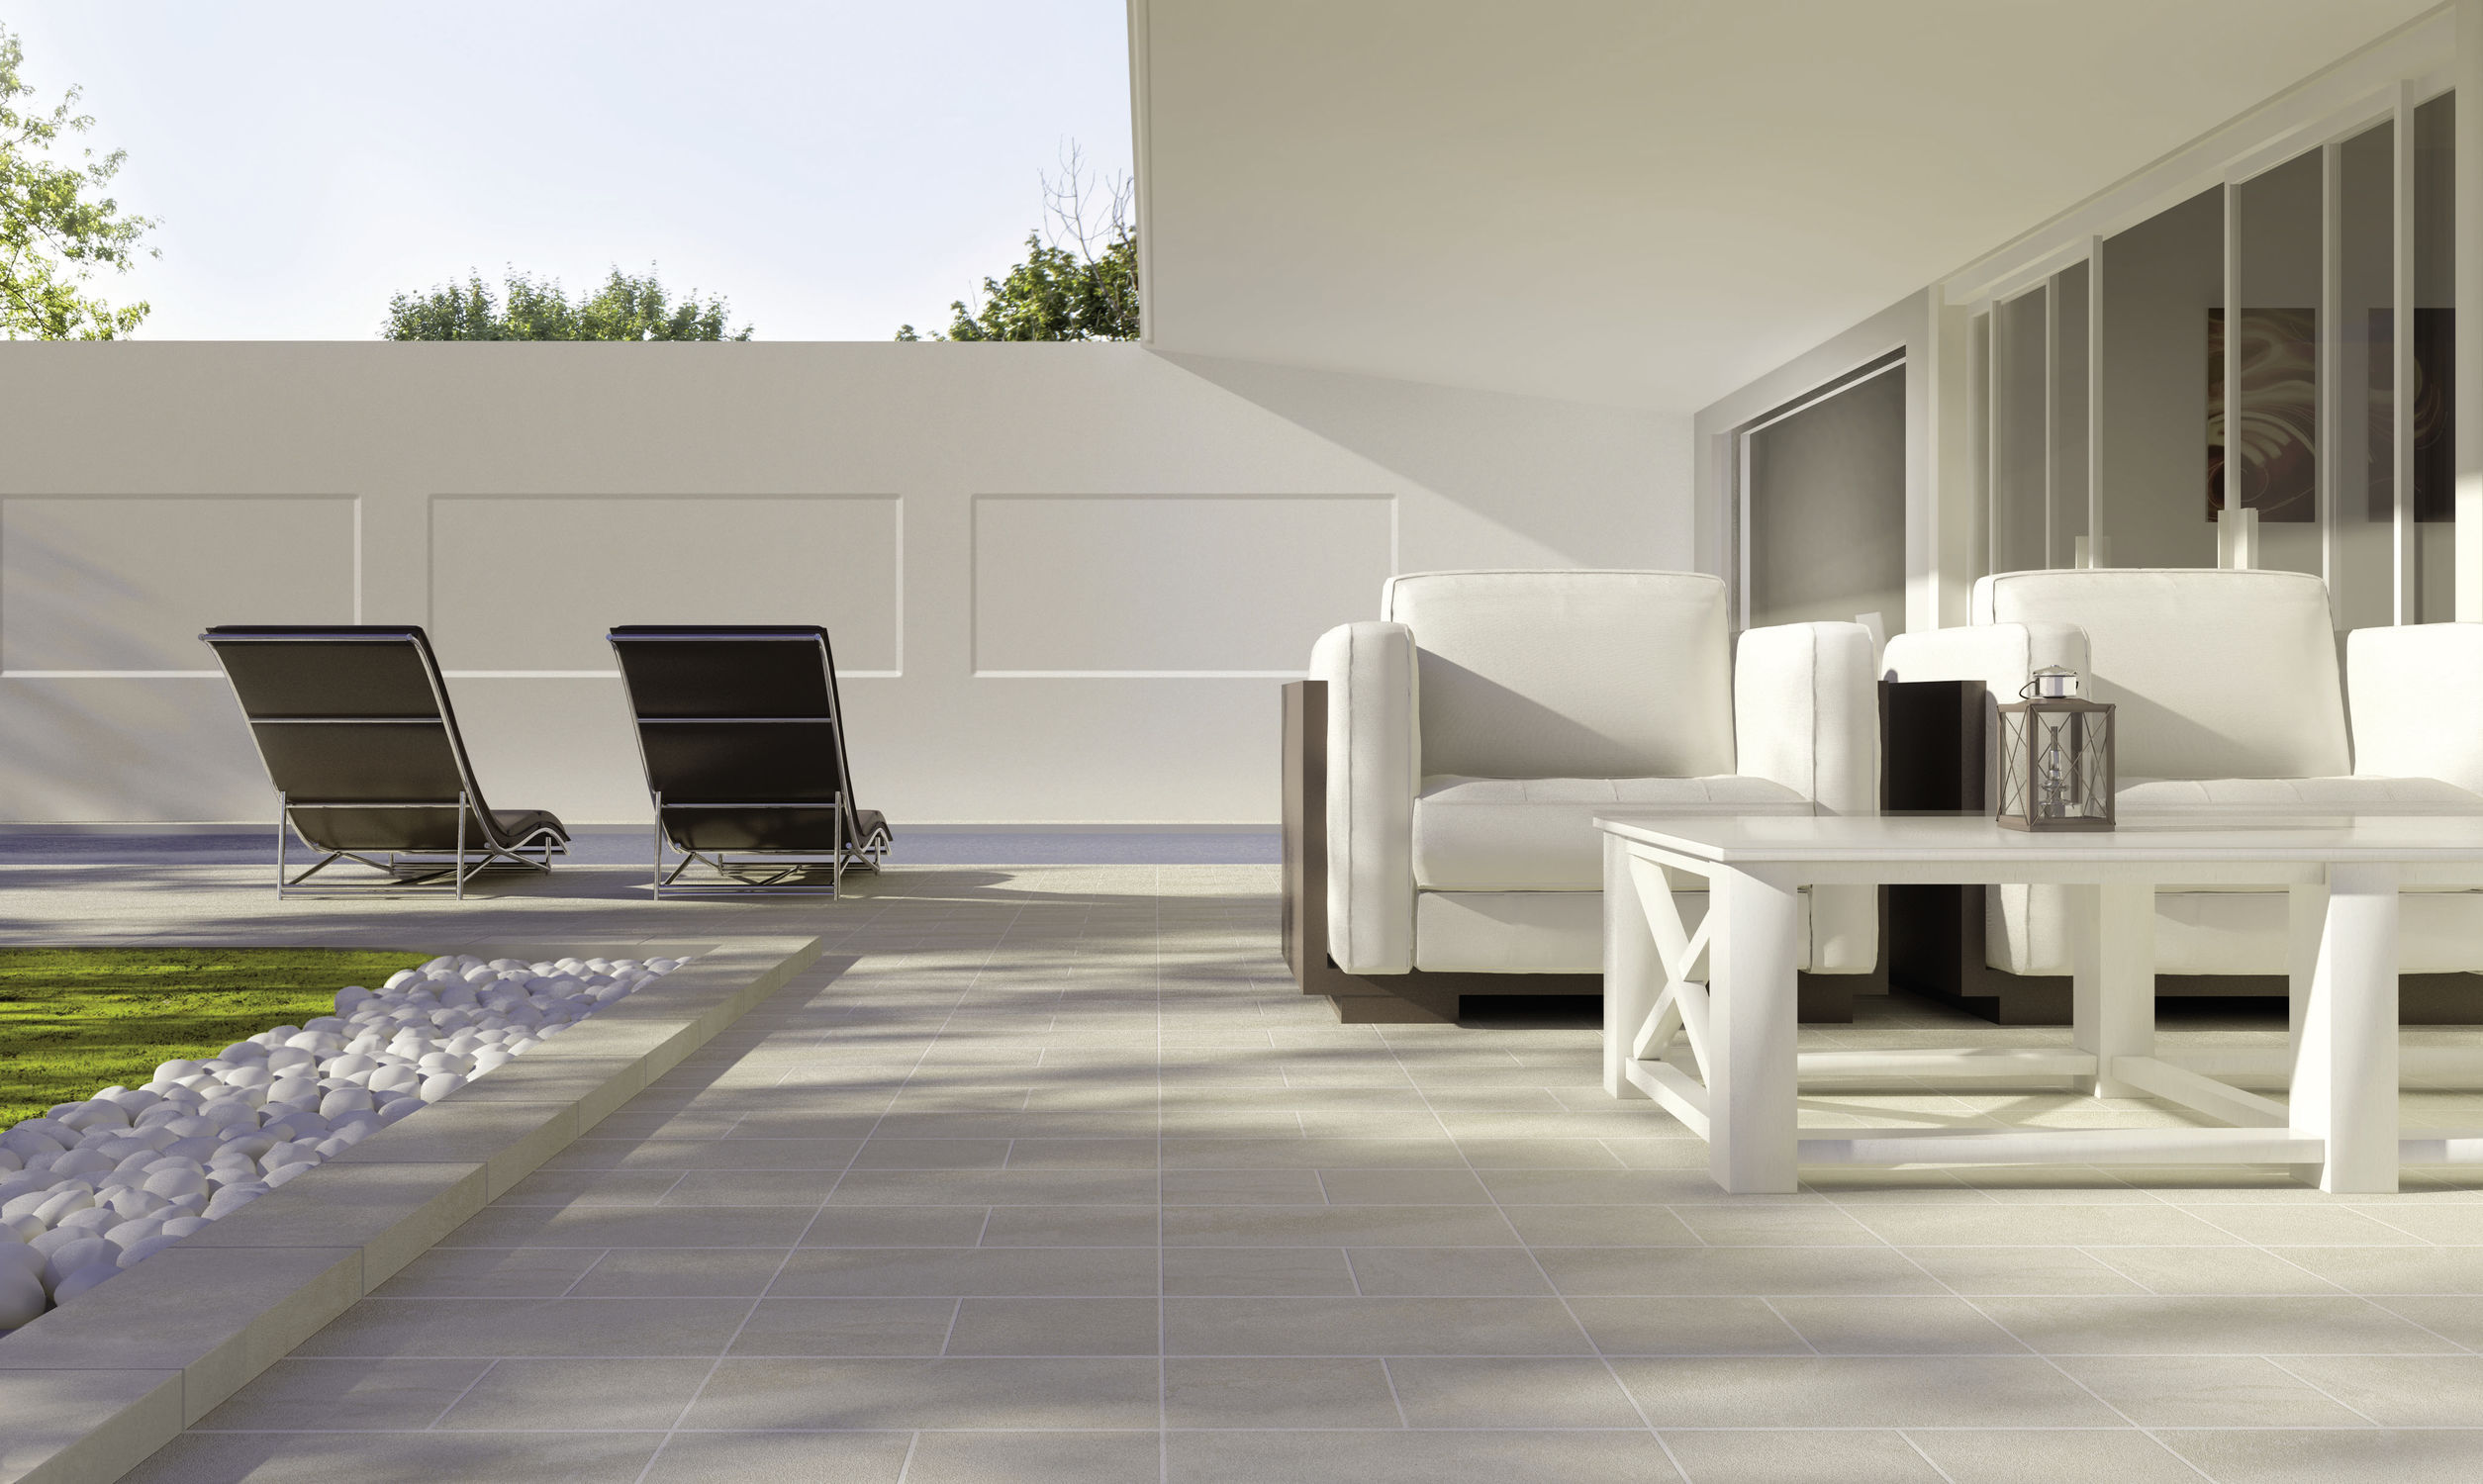 Outdoor tile for floors porcelain stoneware textured